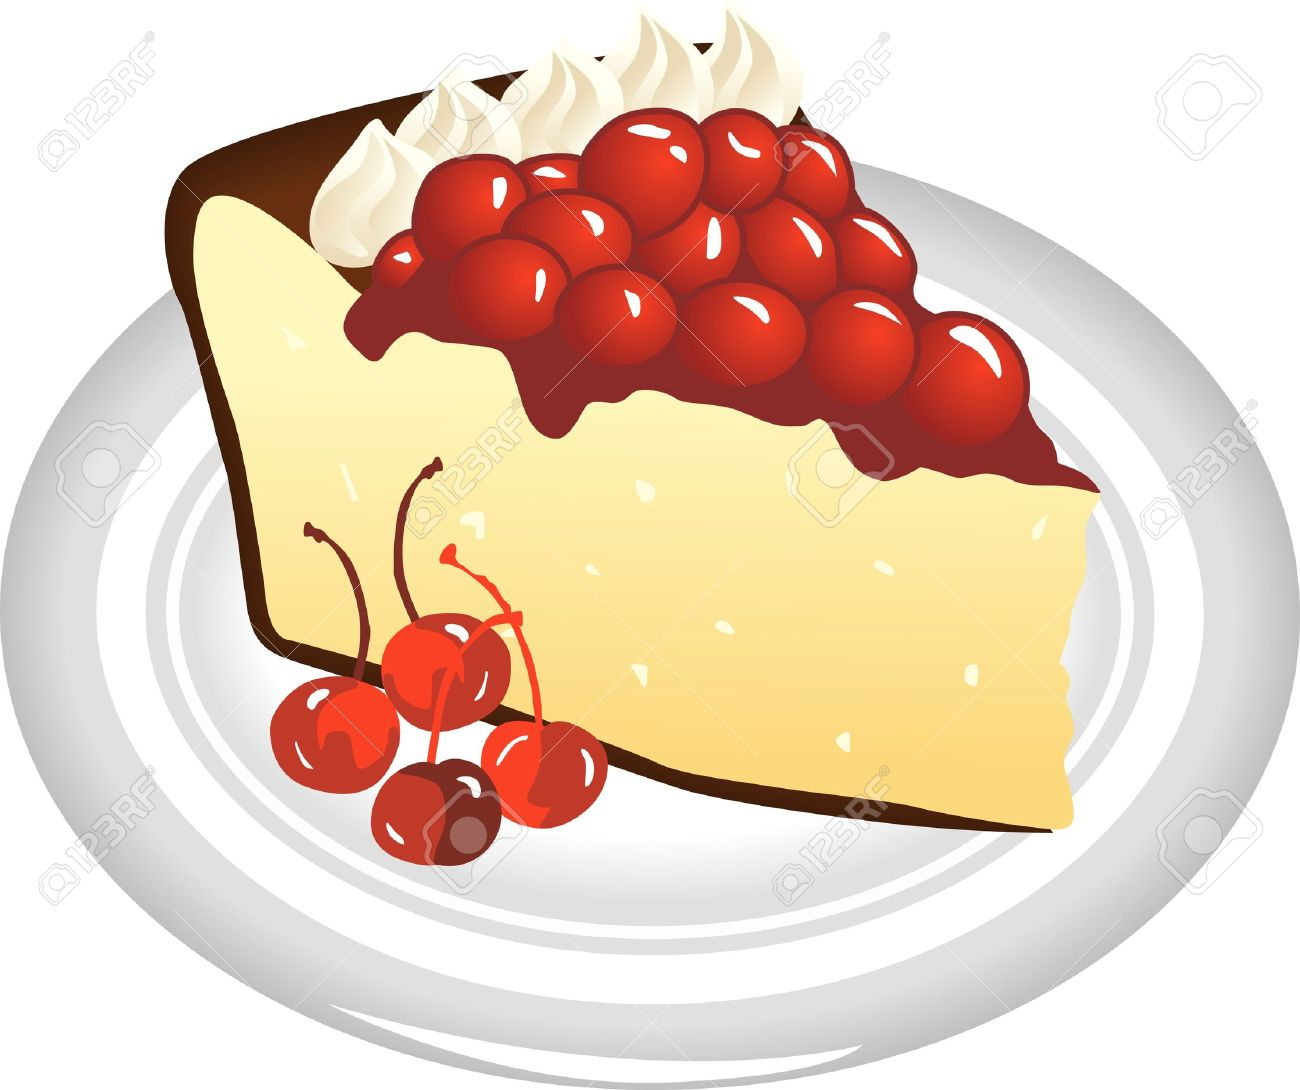 182 Cheesecake free clipart.